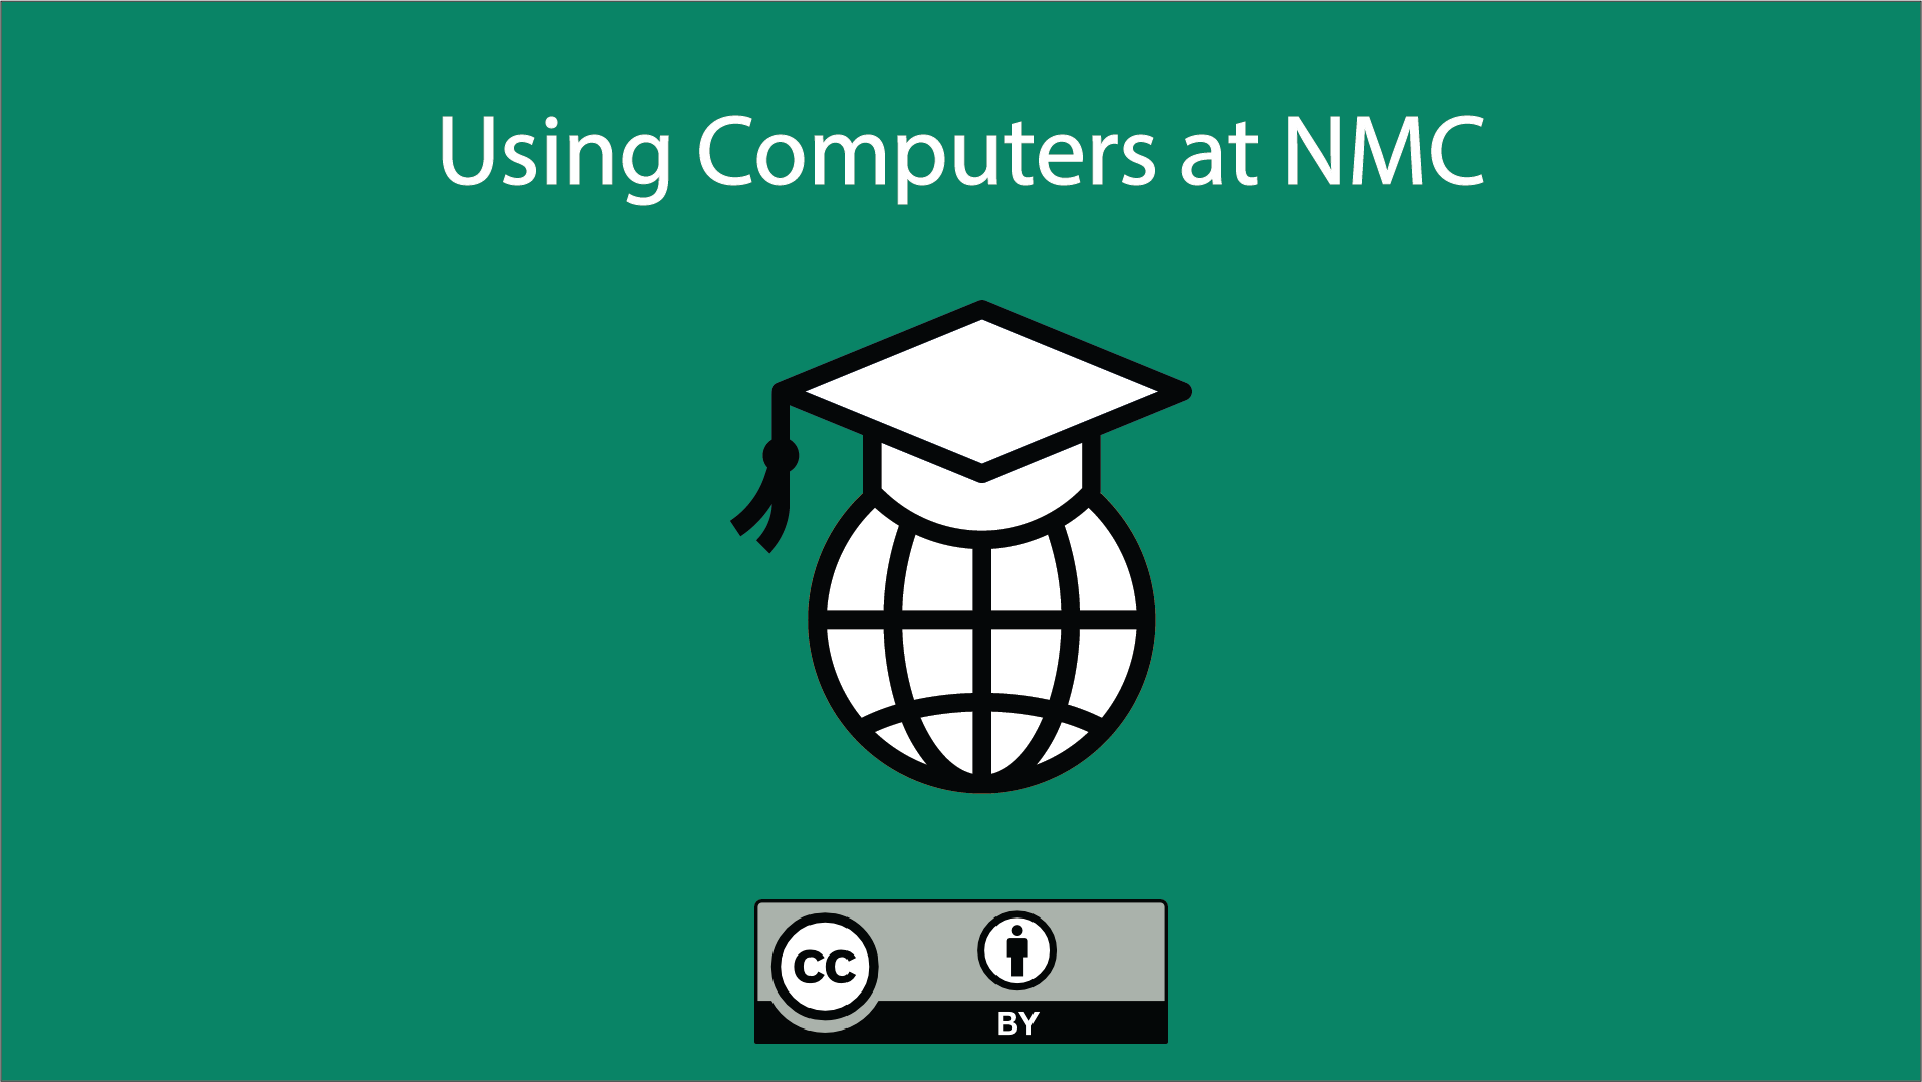 Using a Computer at NMC